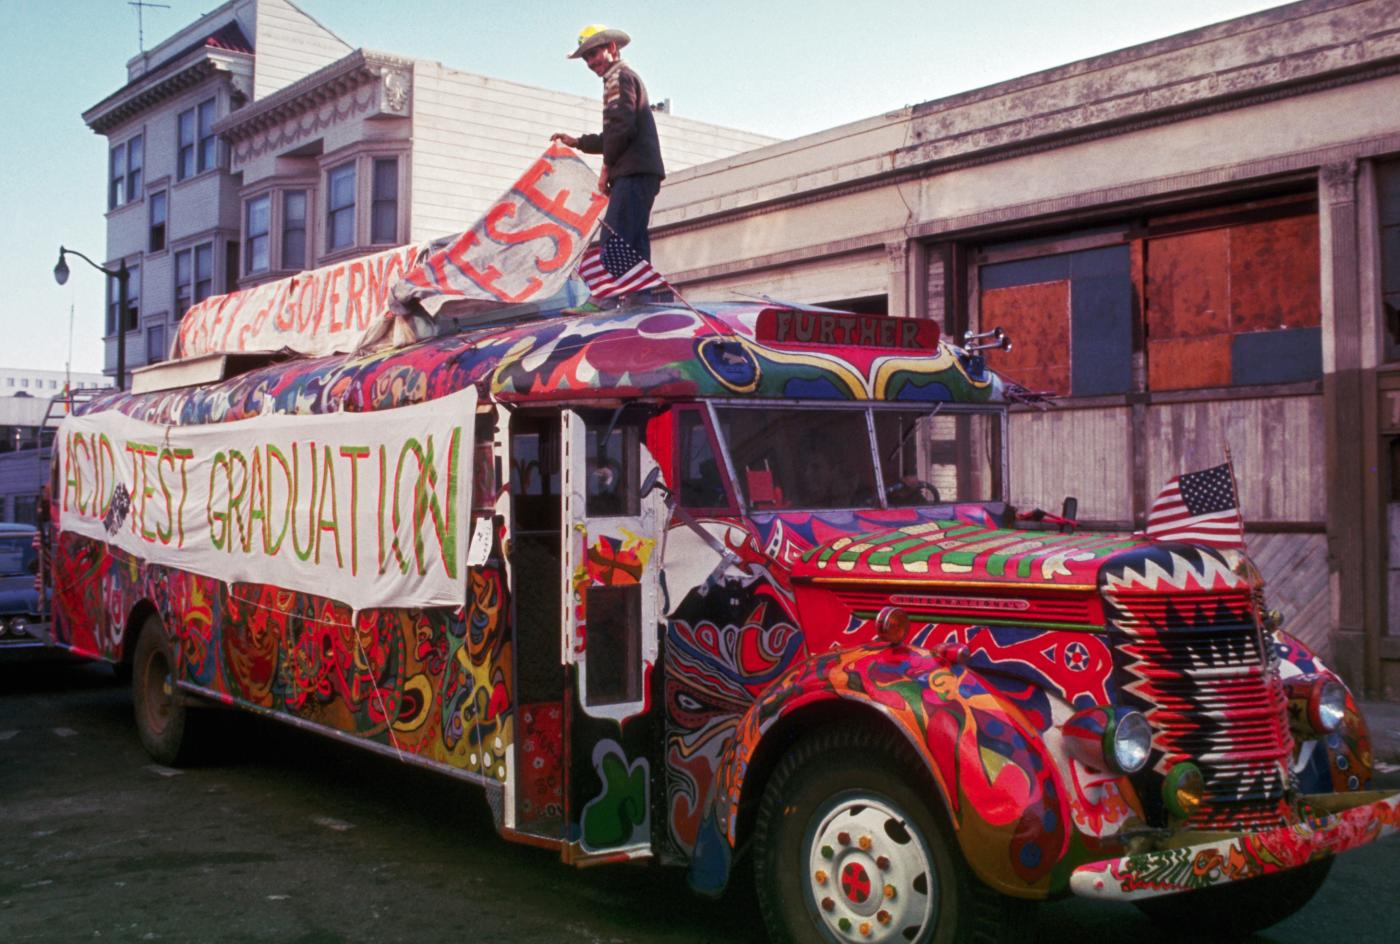 Zane Kesey And The Merry Pranksters Announce Furthur